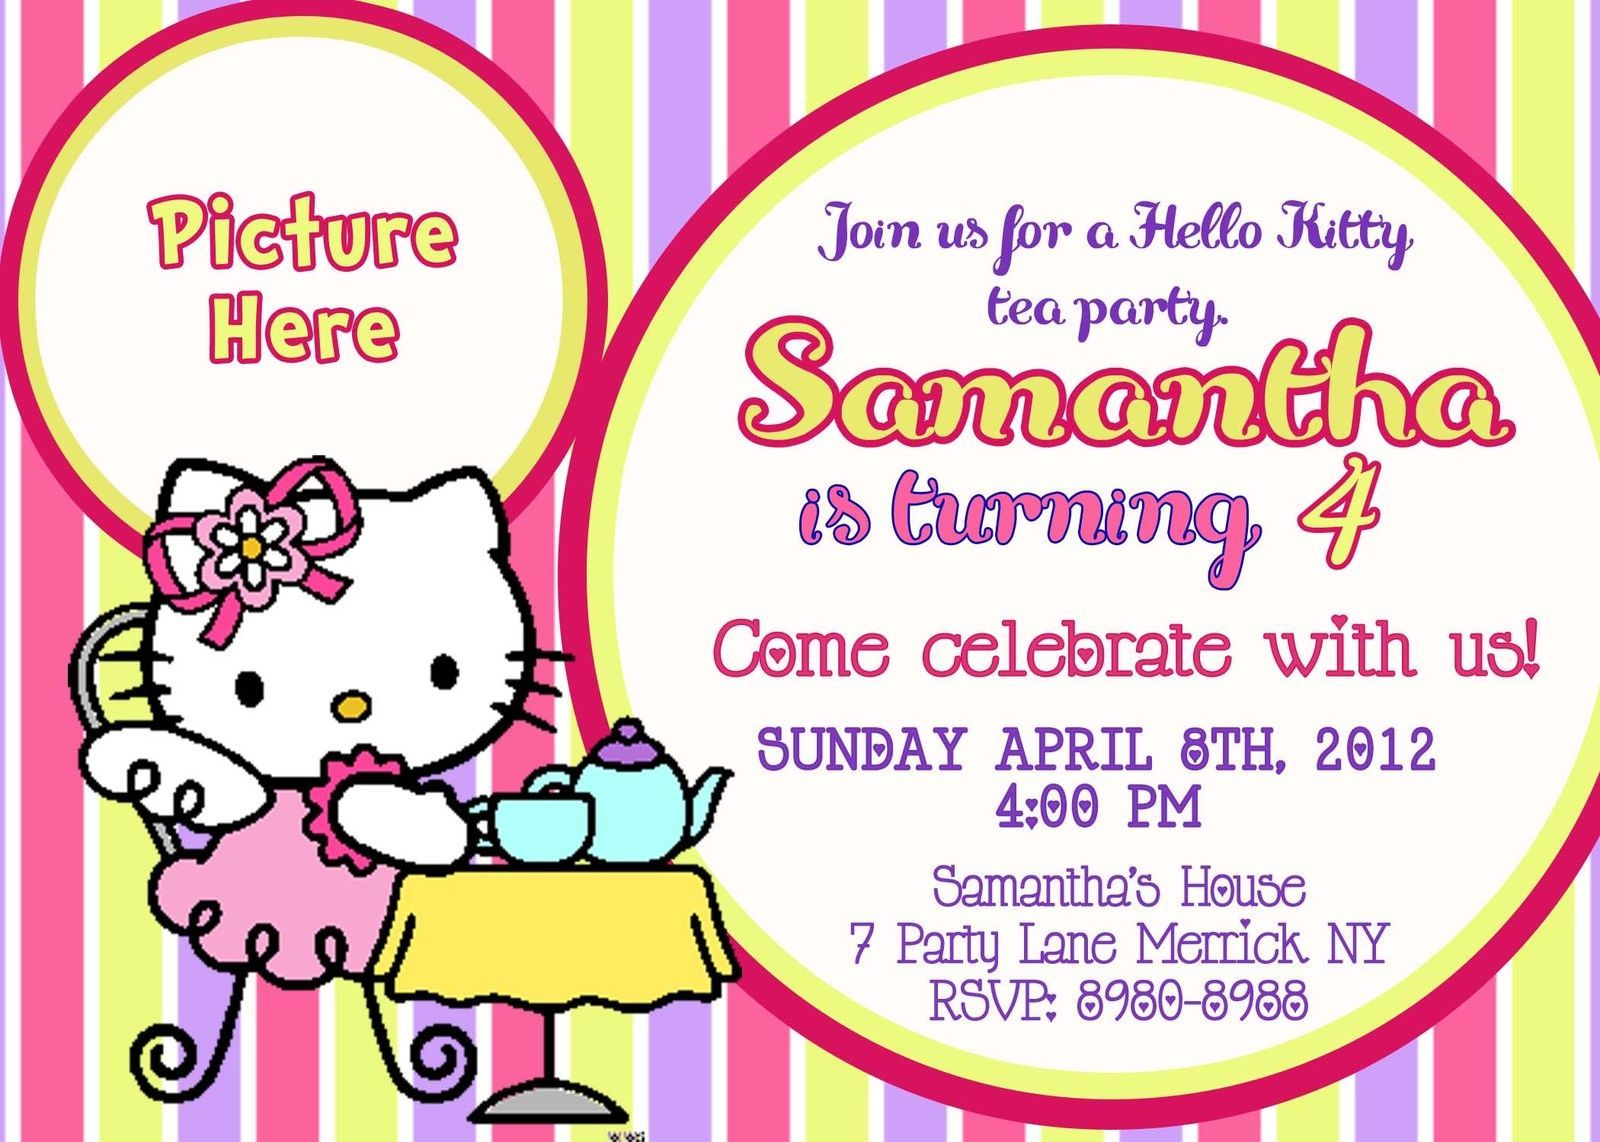 Free Printable Hello Kitty Birthday Party Invitations Hello Kitty Birthday Invitations Printable Birthday Invitations Hello Kitty Invitations